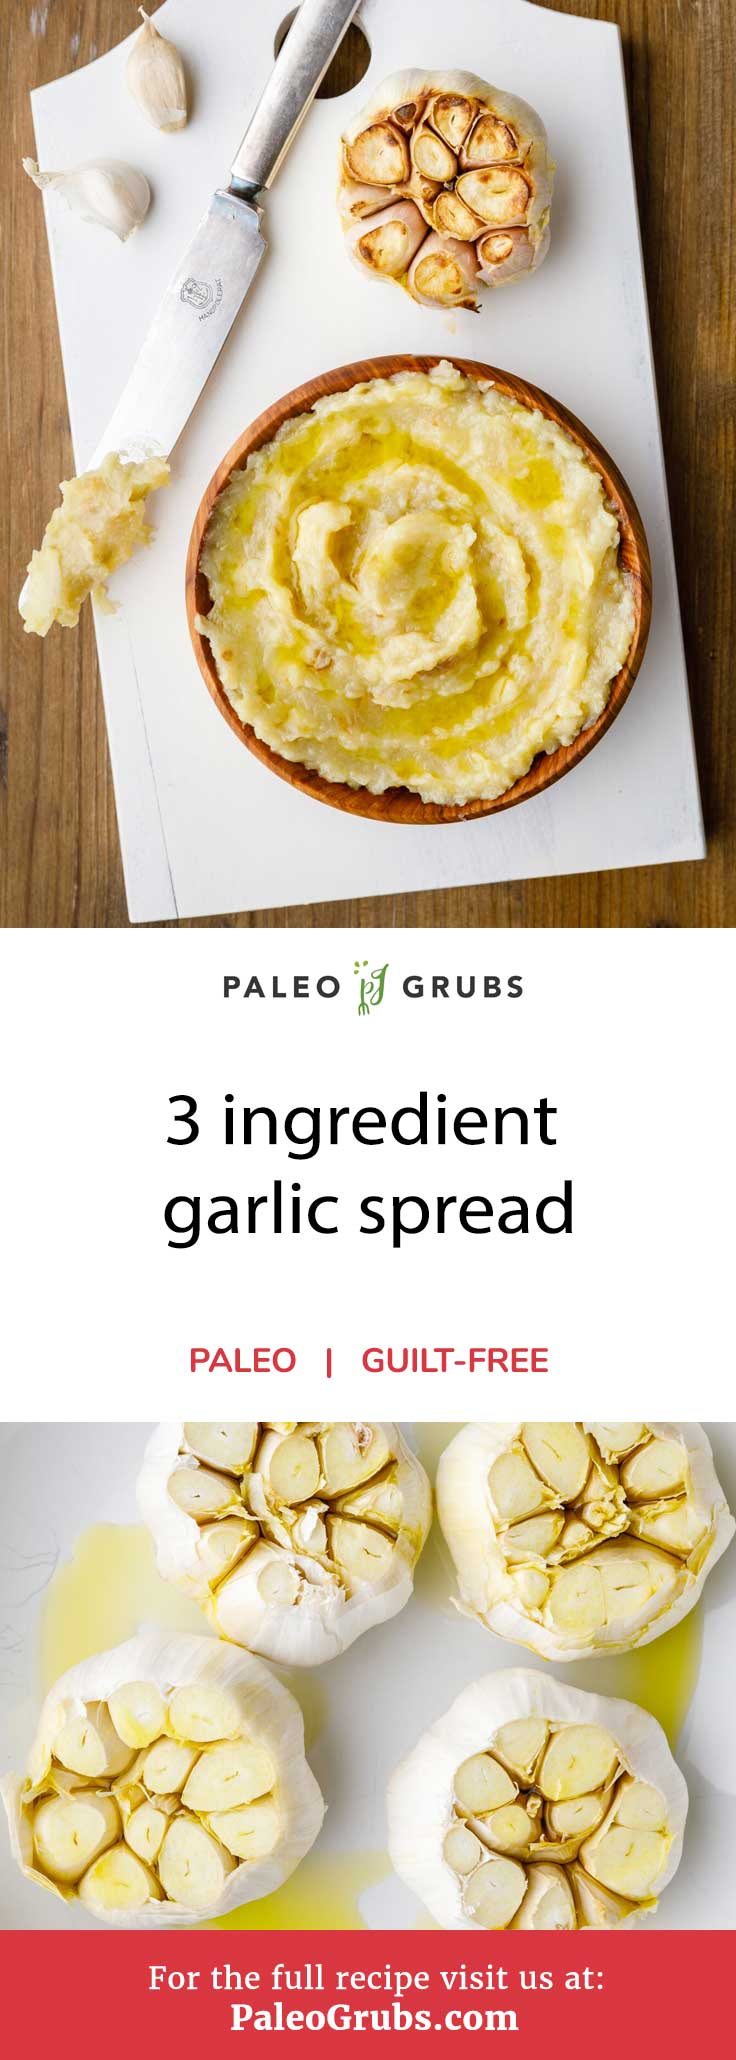 3 Ingredient Garlic Spread The Perfect Heart Healthy Paleo Spread Paleo Grubs